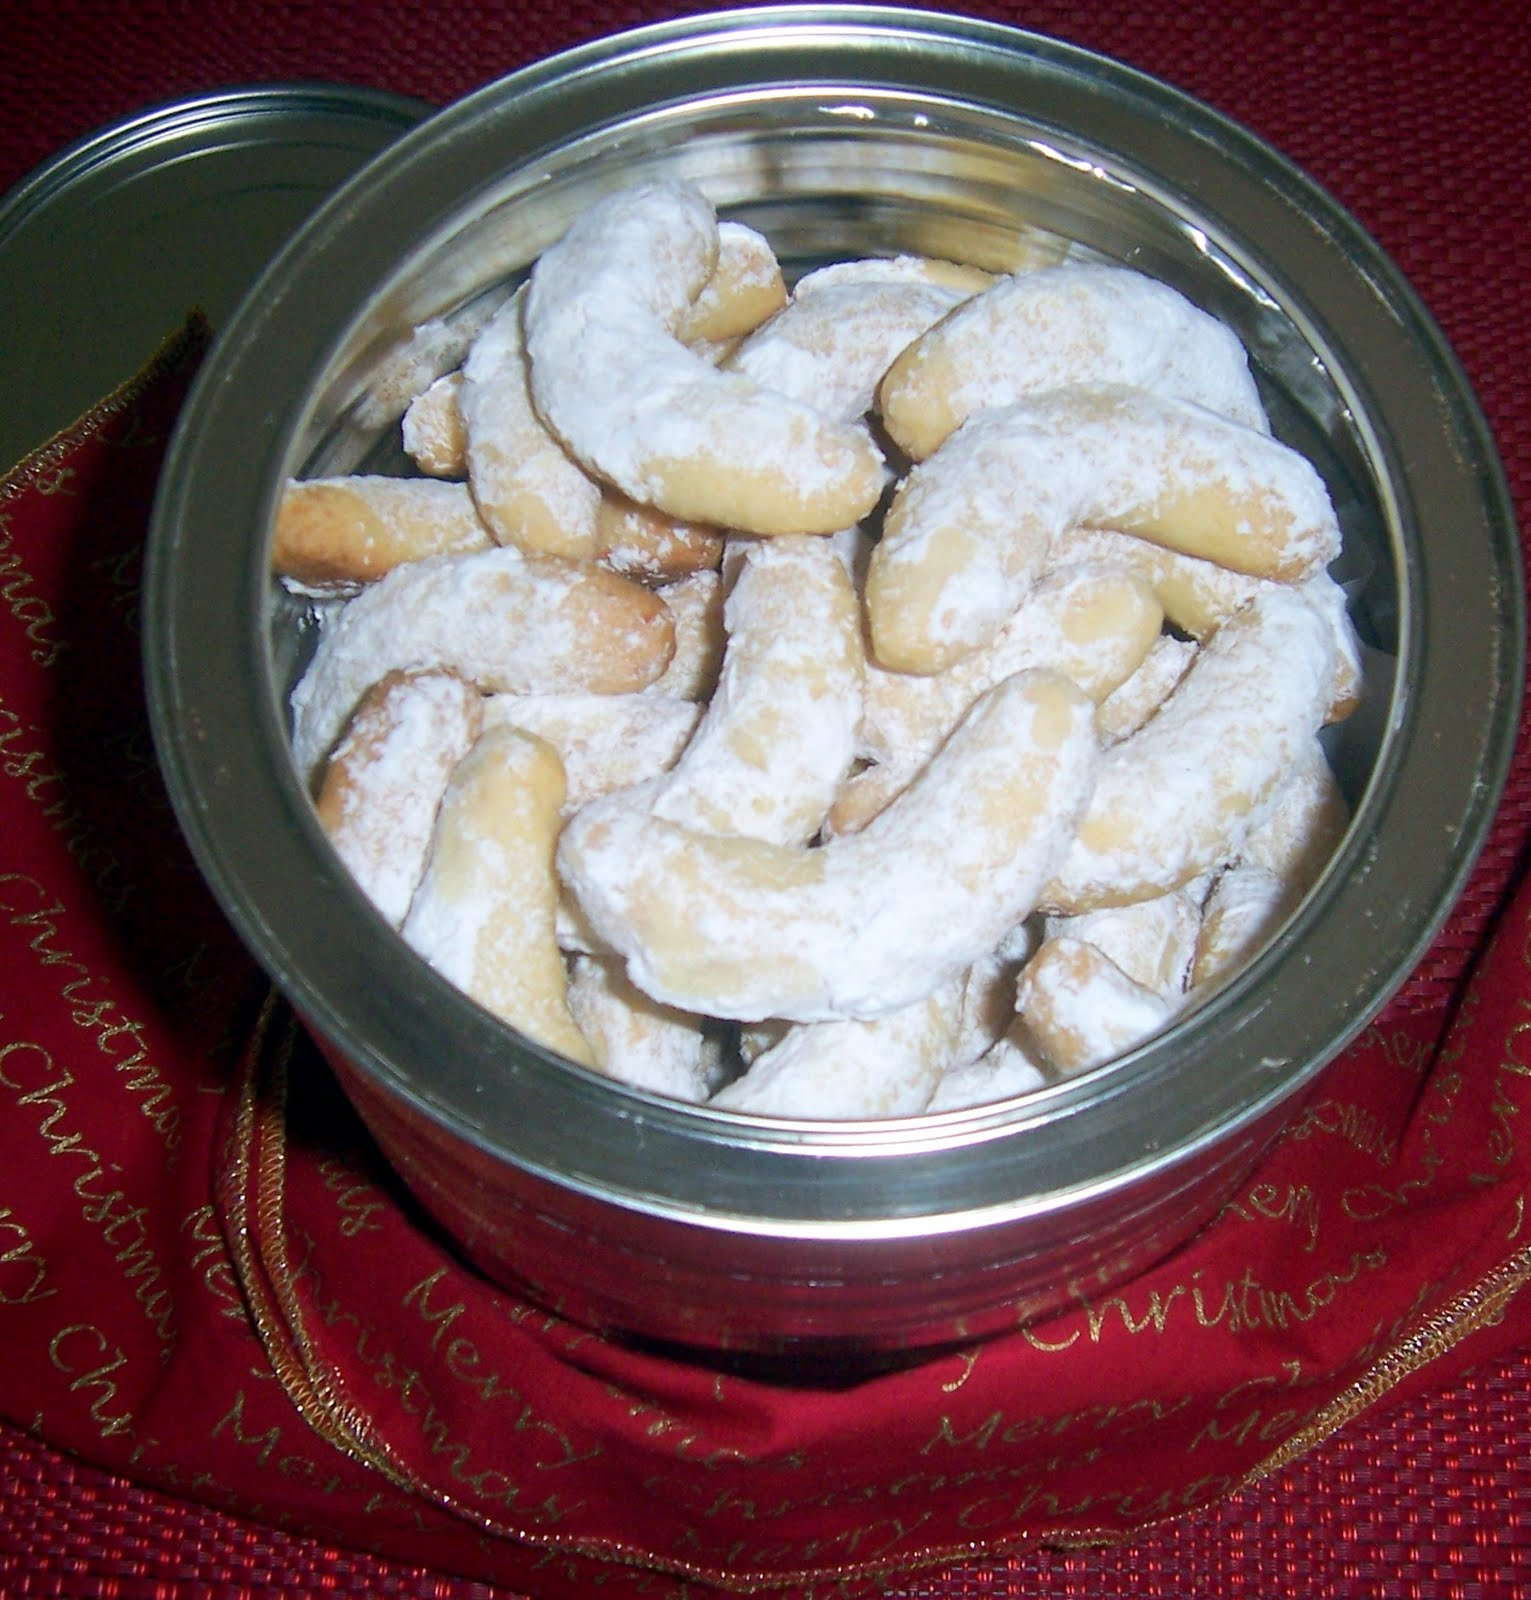 ... - in favorite recipes: Coconut biscuits - from my first cook book